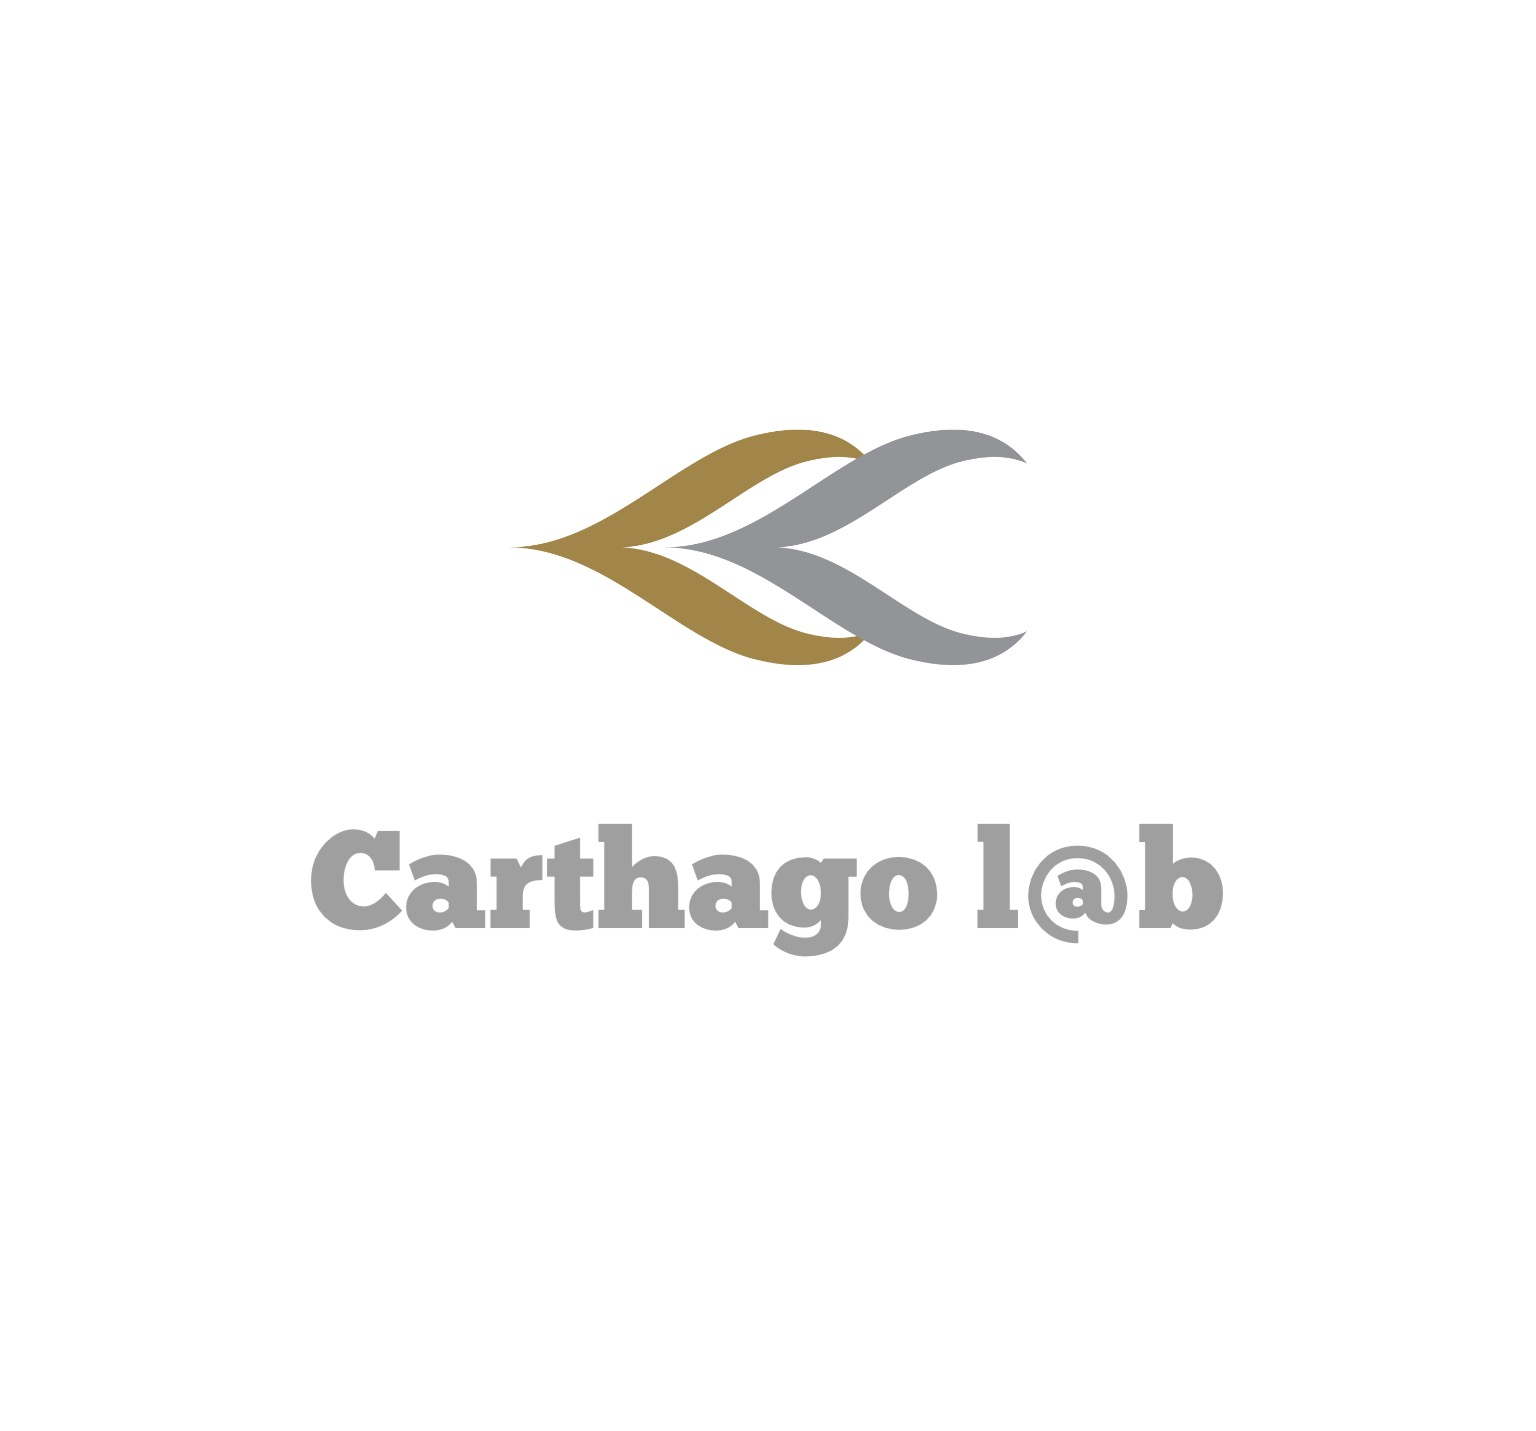 CARTHAGO LAB